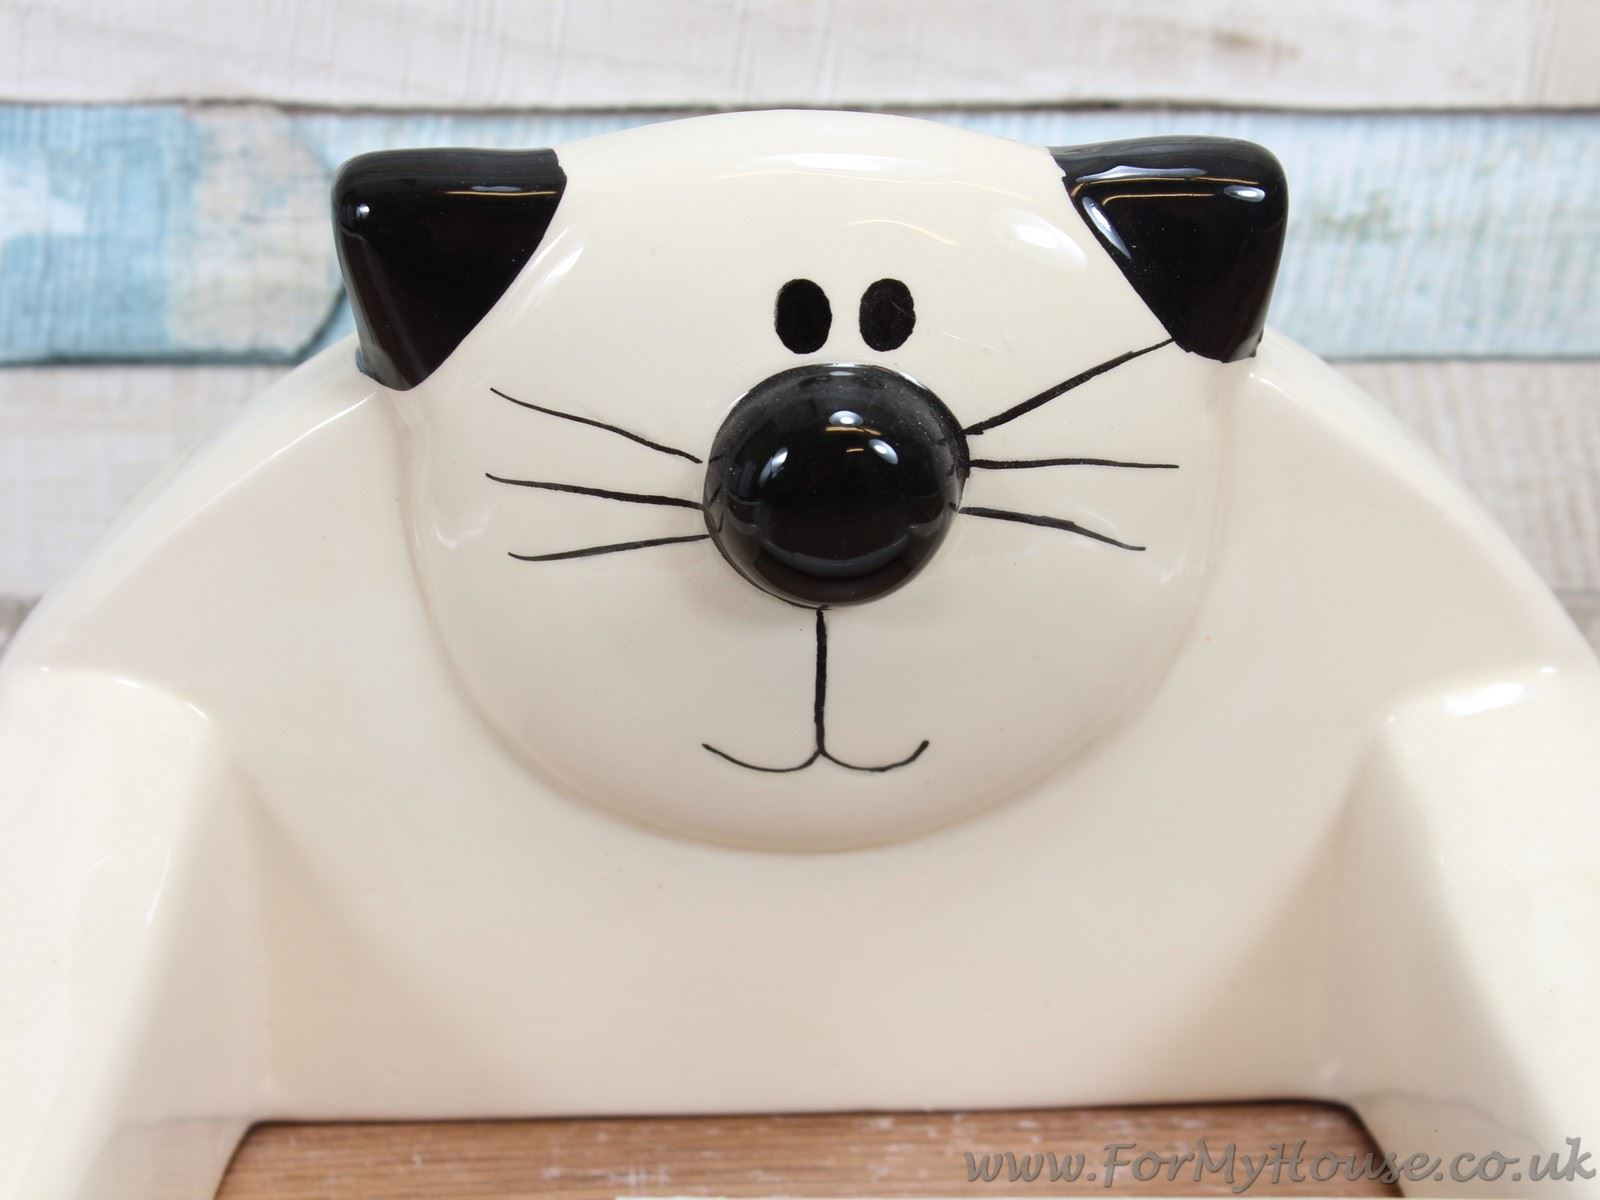 Animal Toilet Paper Holder Stand 2kewt Novelty Cat Cream Ceramic Toilet Roll Paper Holder